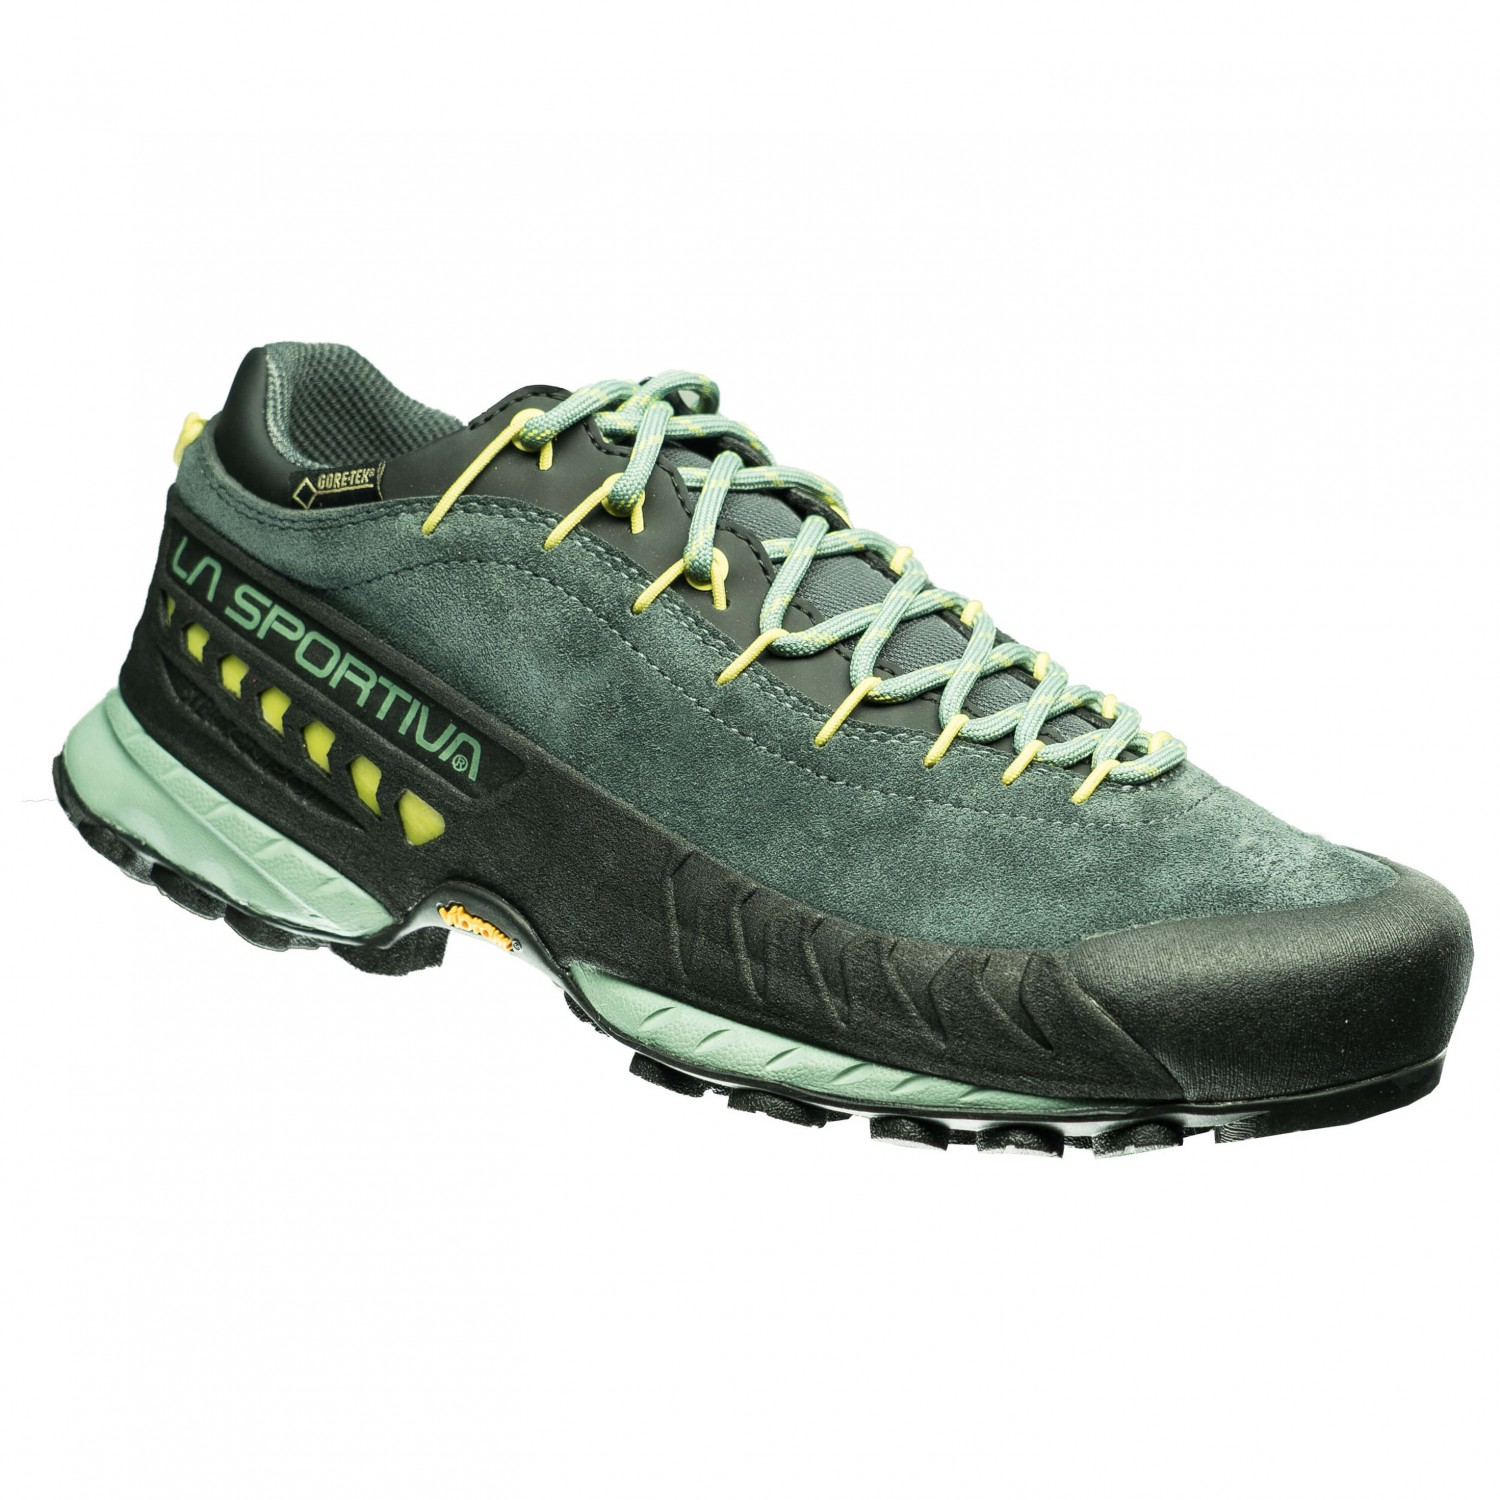 La Sportiva - Women's TX4 GTX - Approachschuhe Green Bay